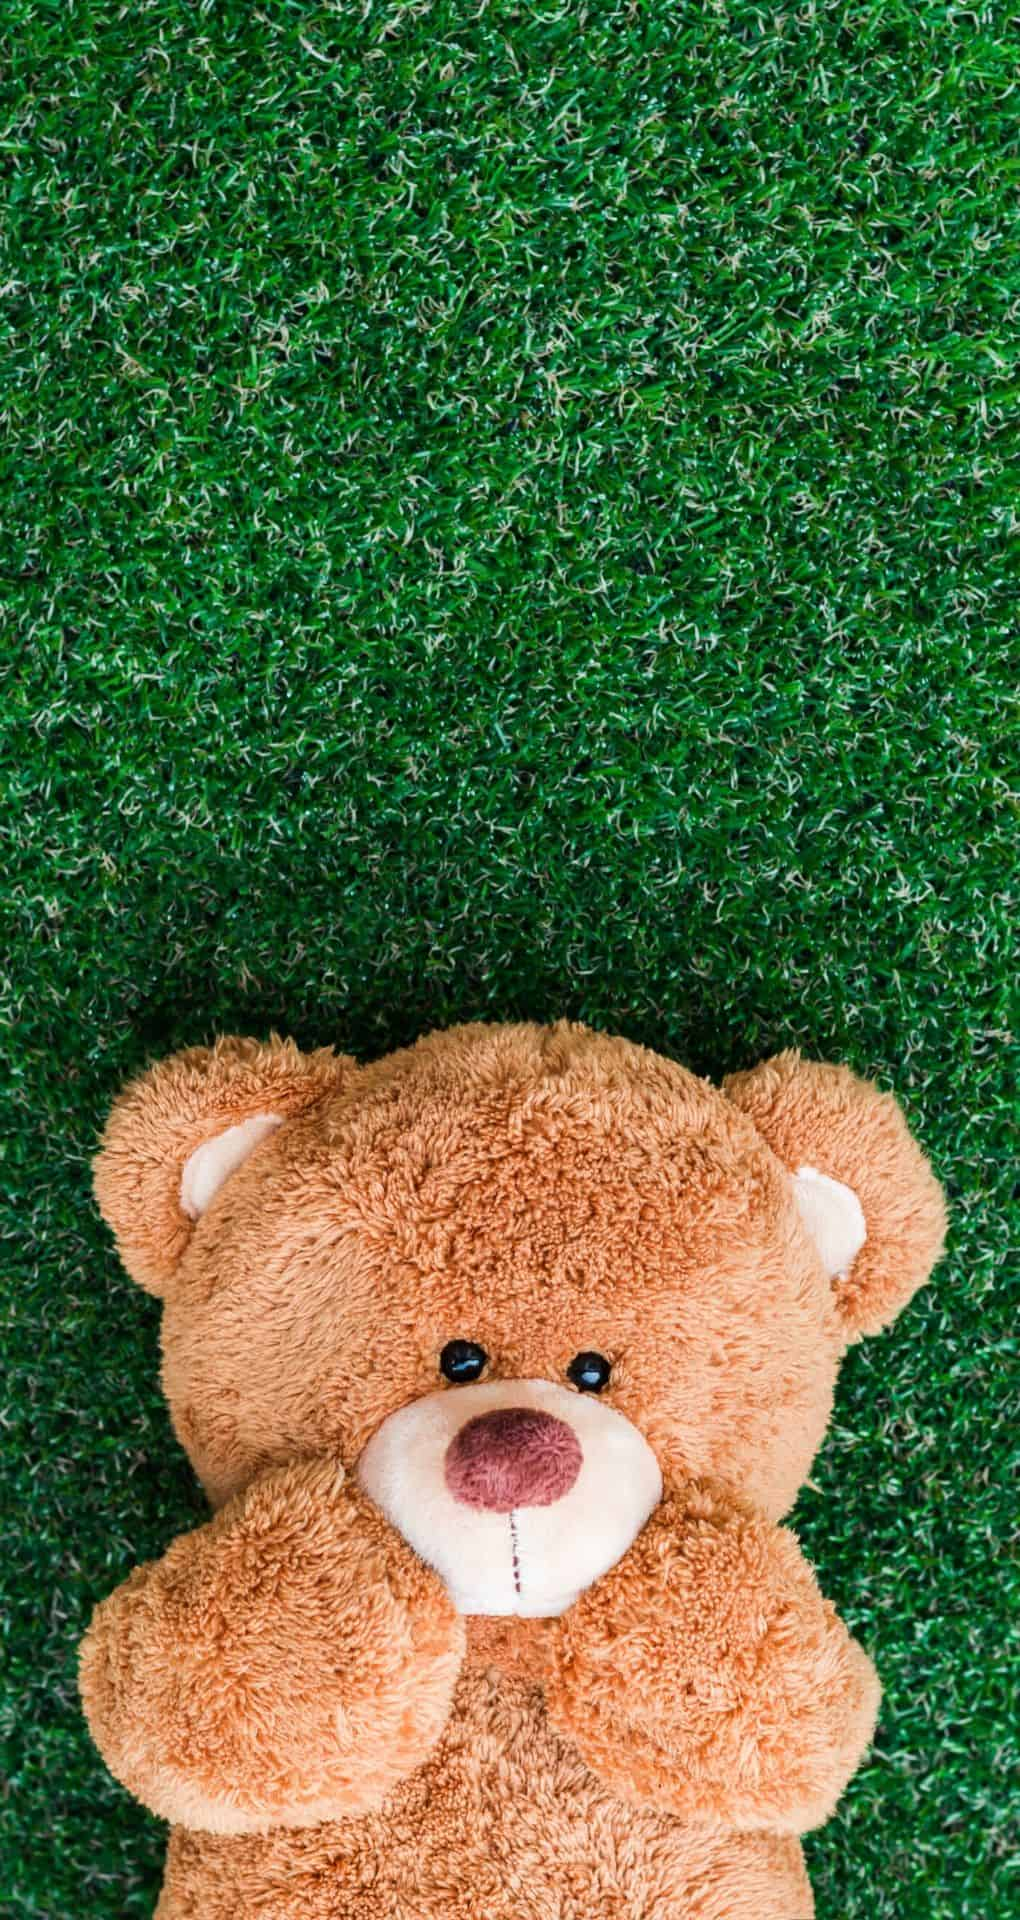 cute iPhone wallpaper with a teddy